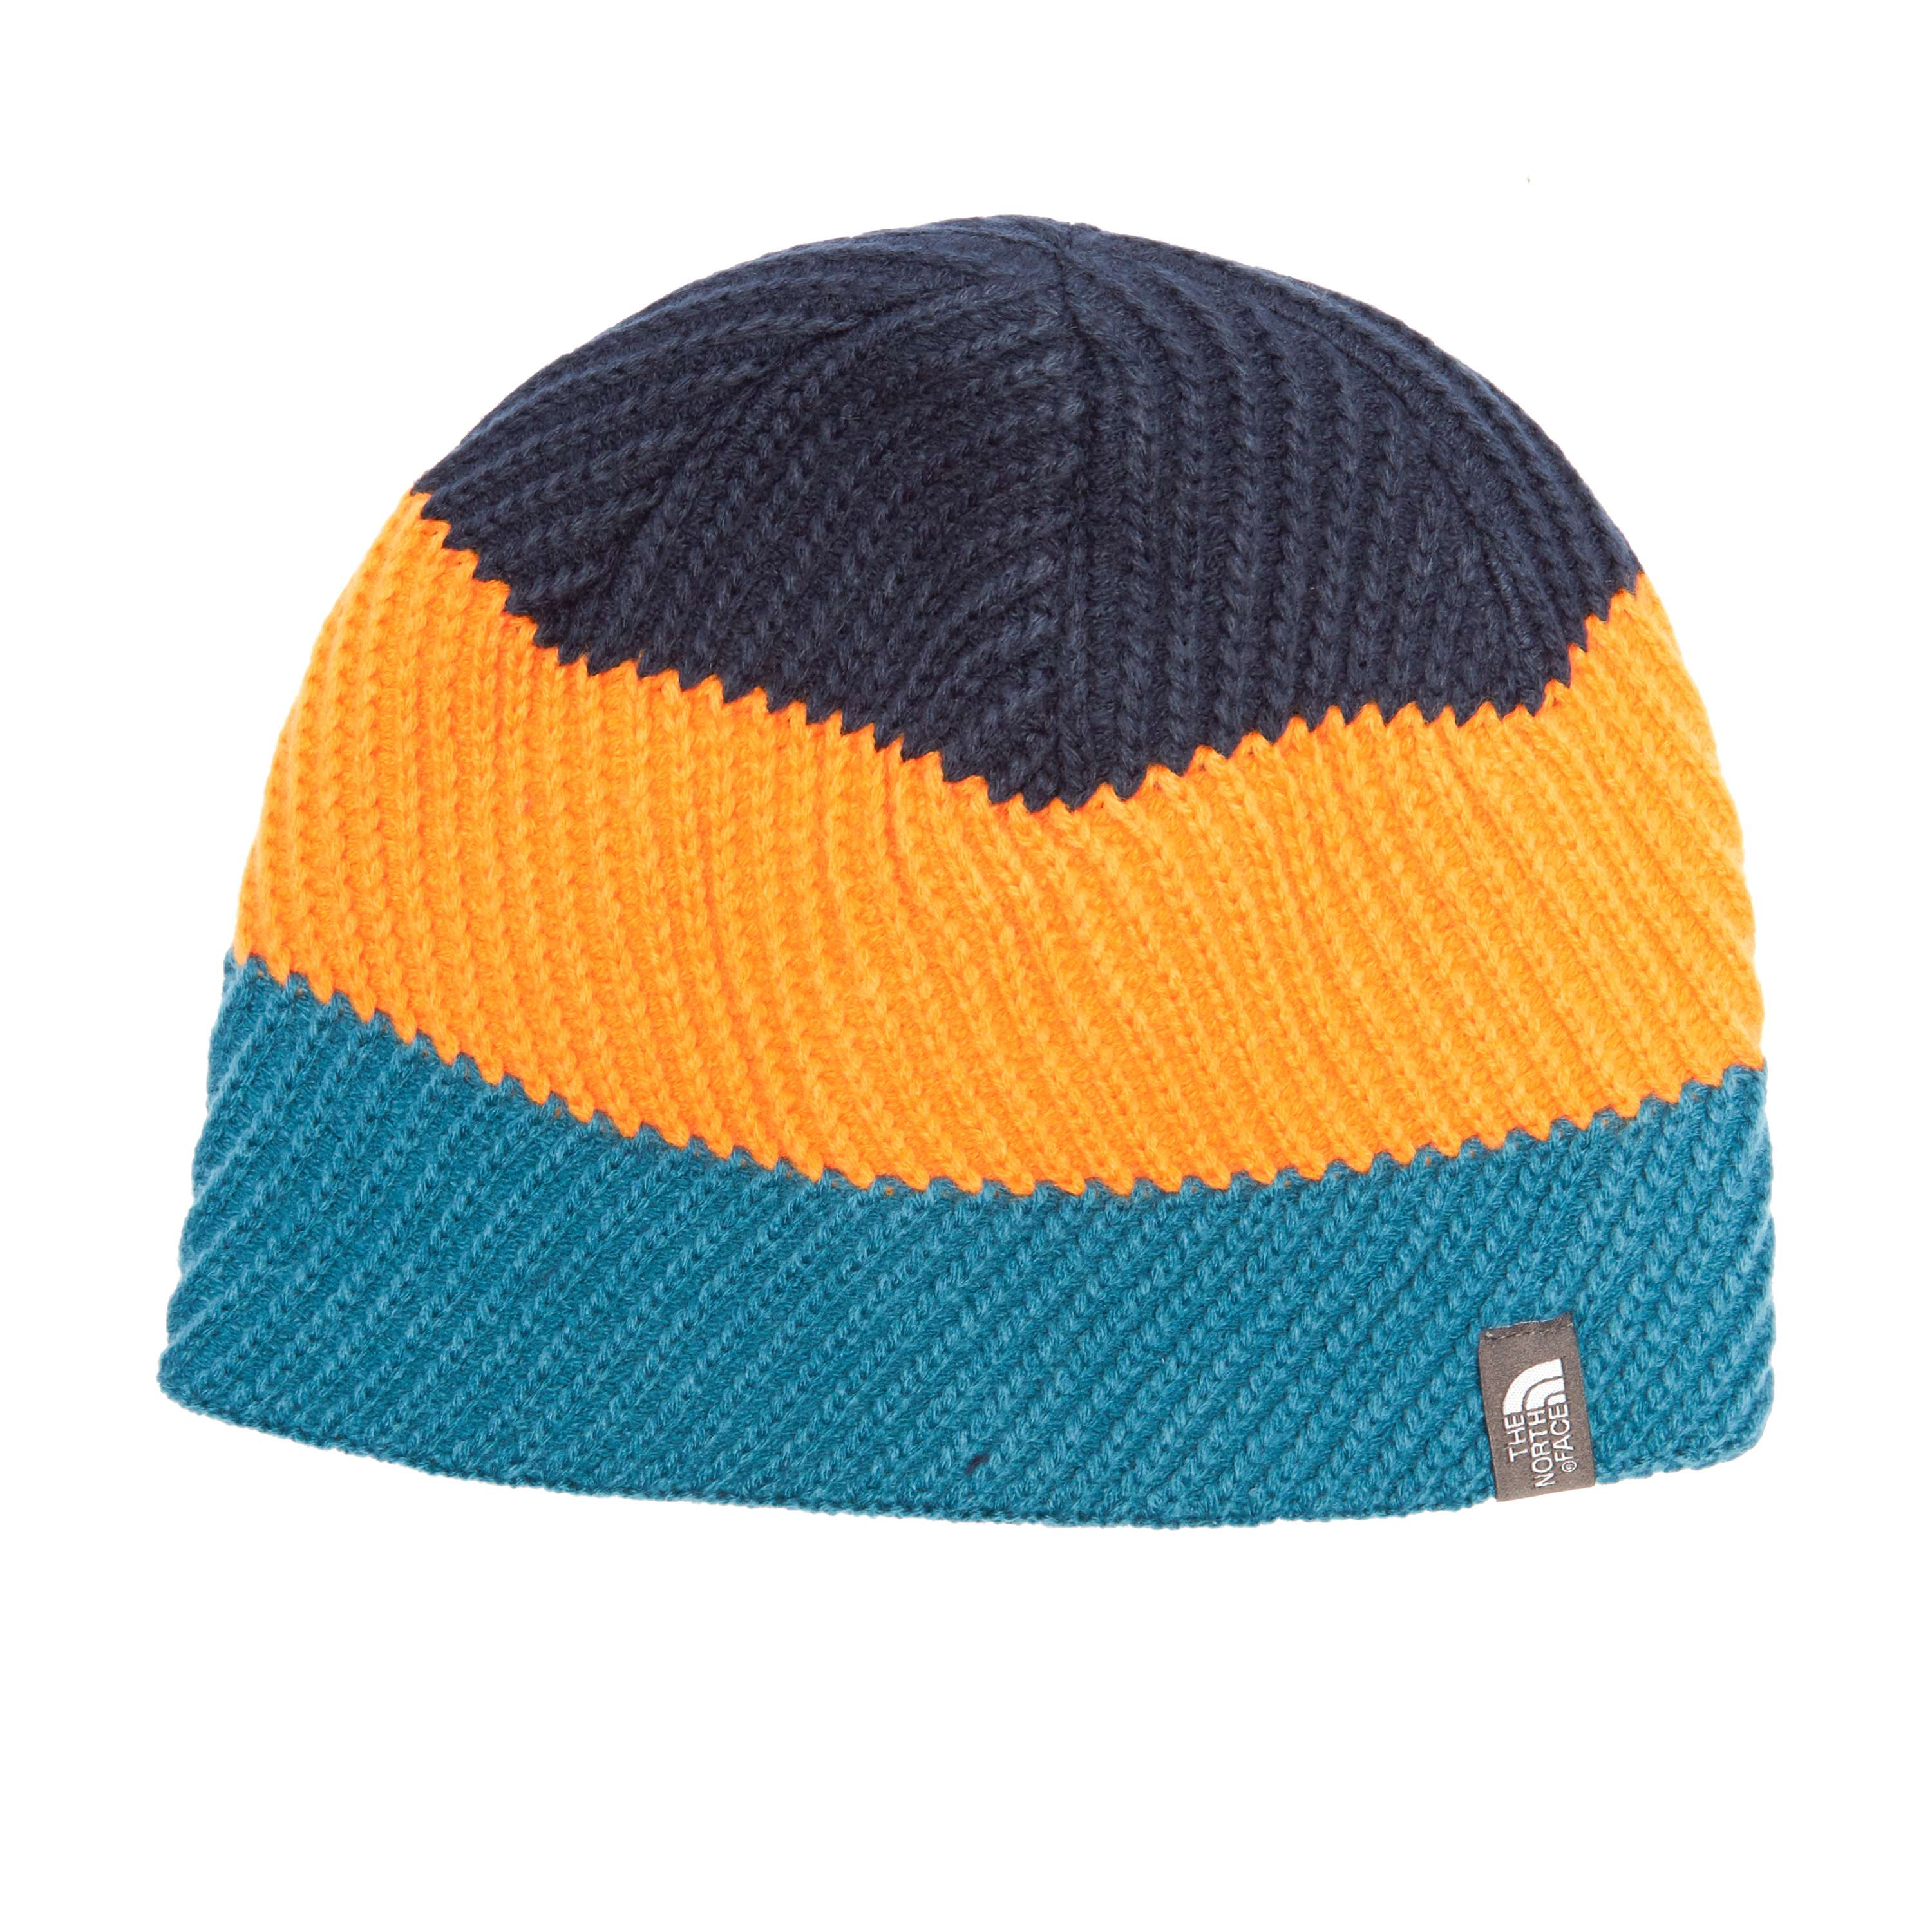 THE NORTH FACE Boys' Gone Wild Beanie